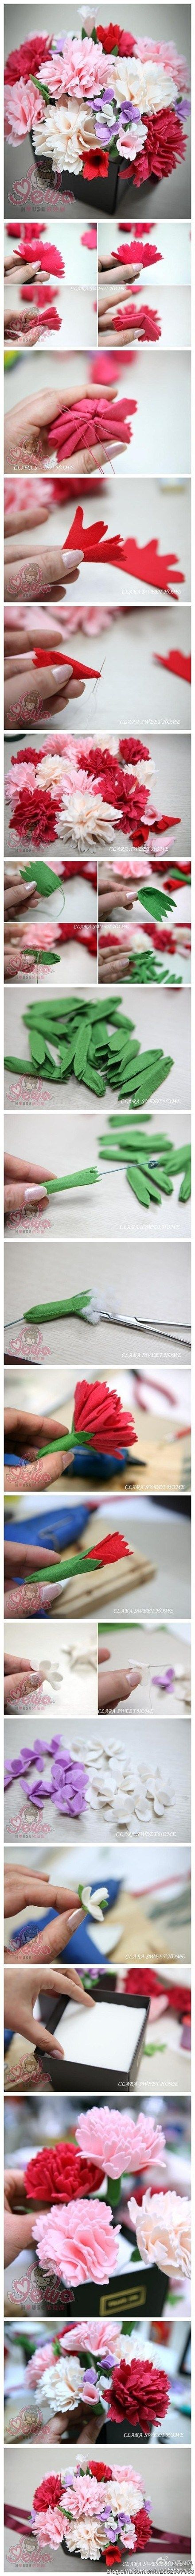 carnation and hydrangea bouquet tutorial